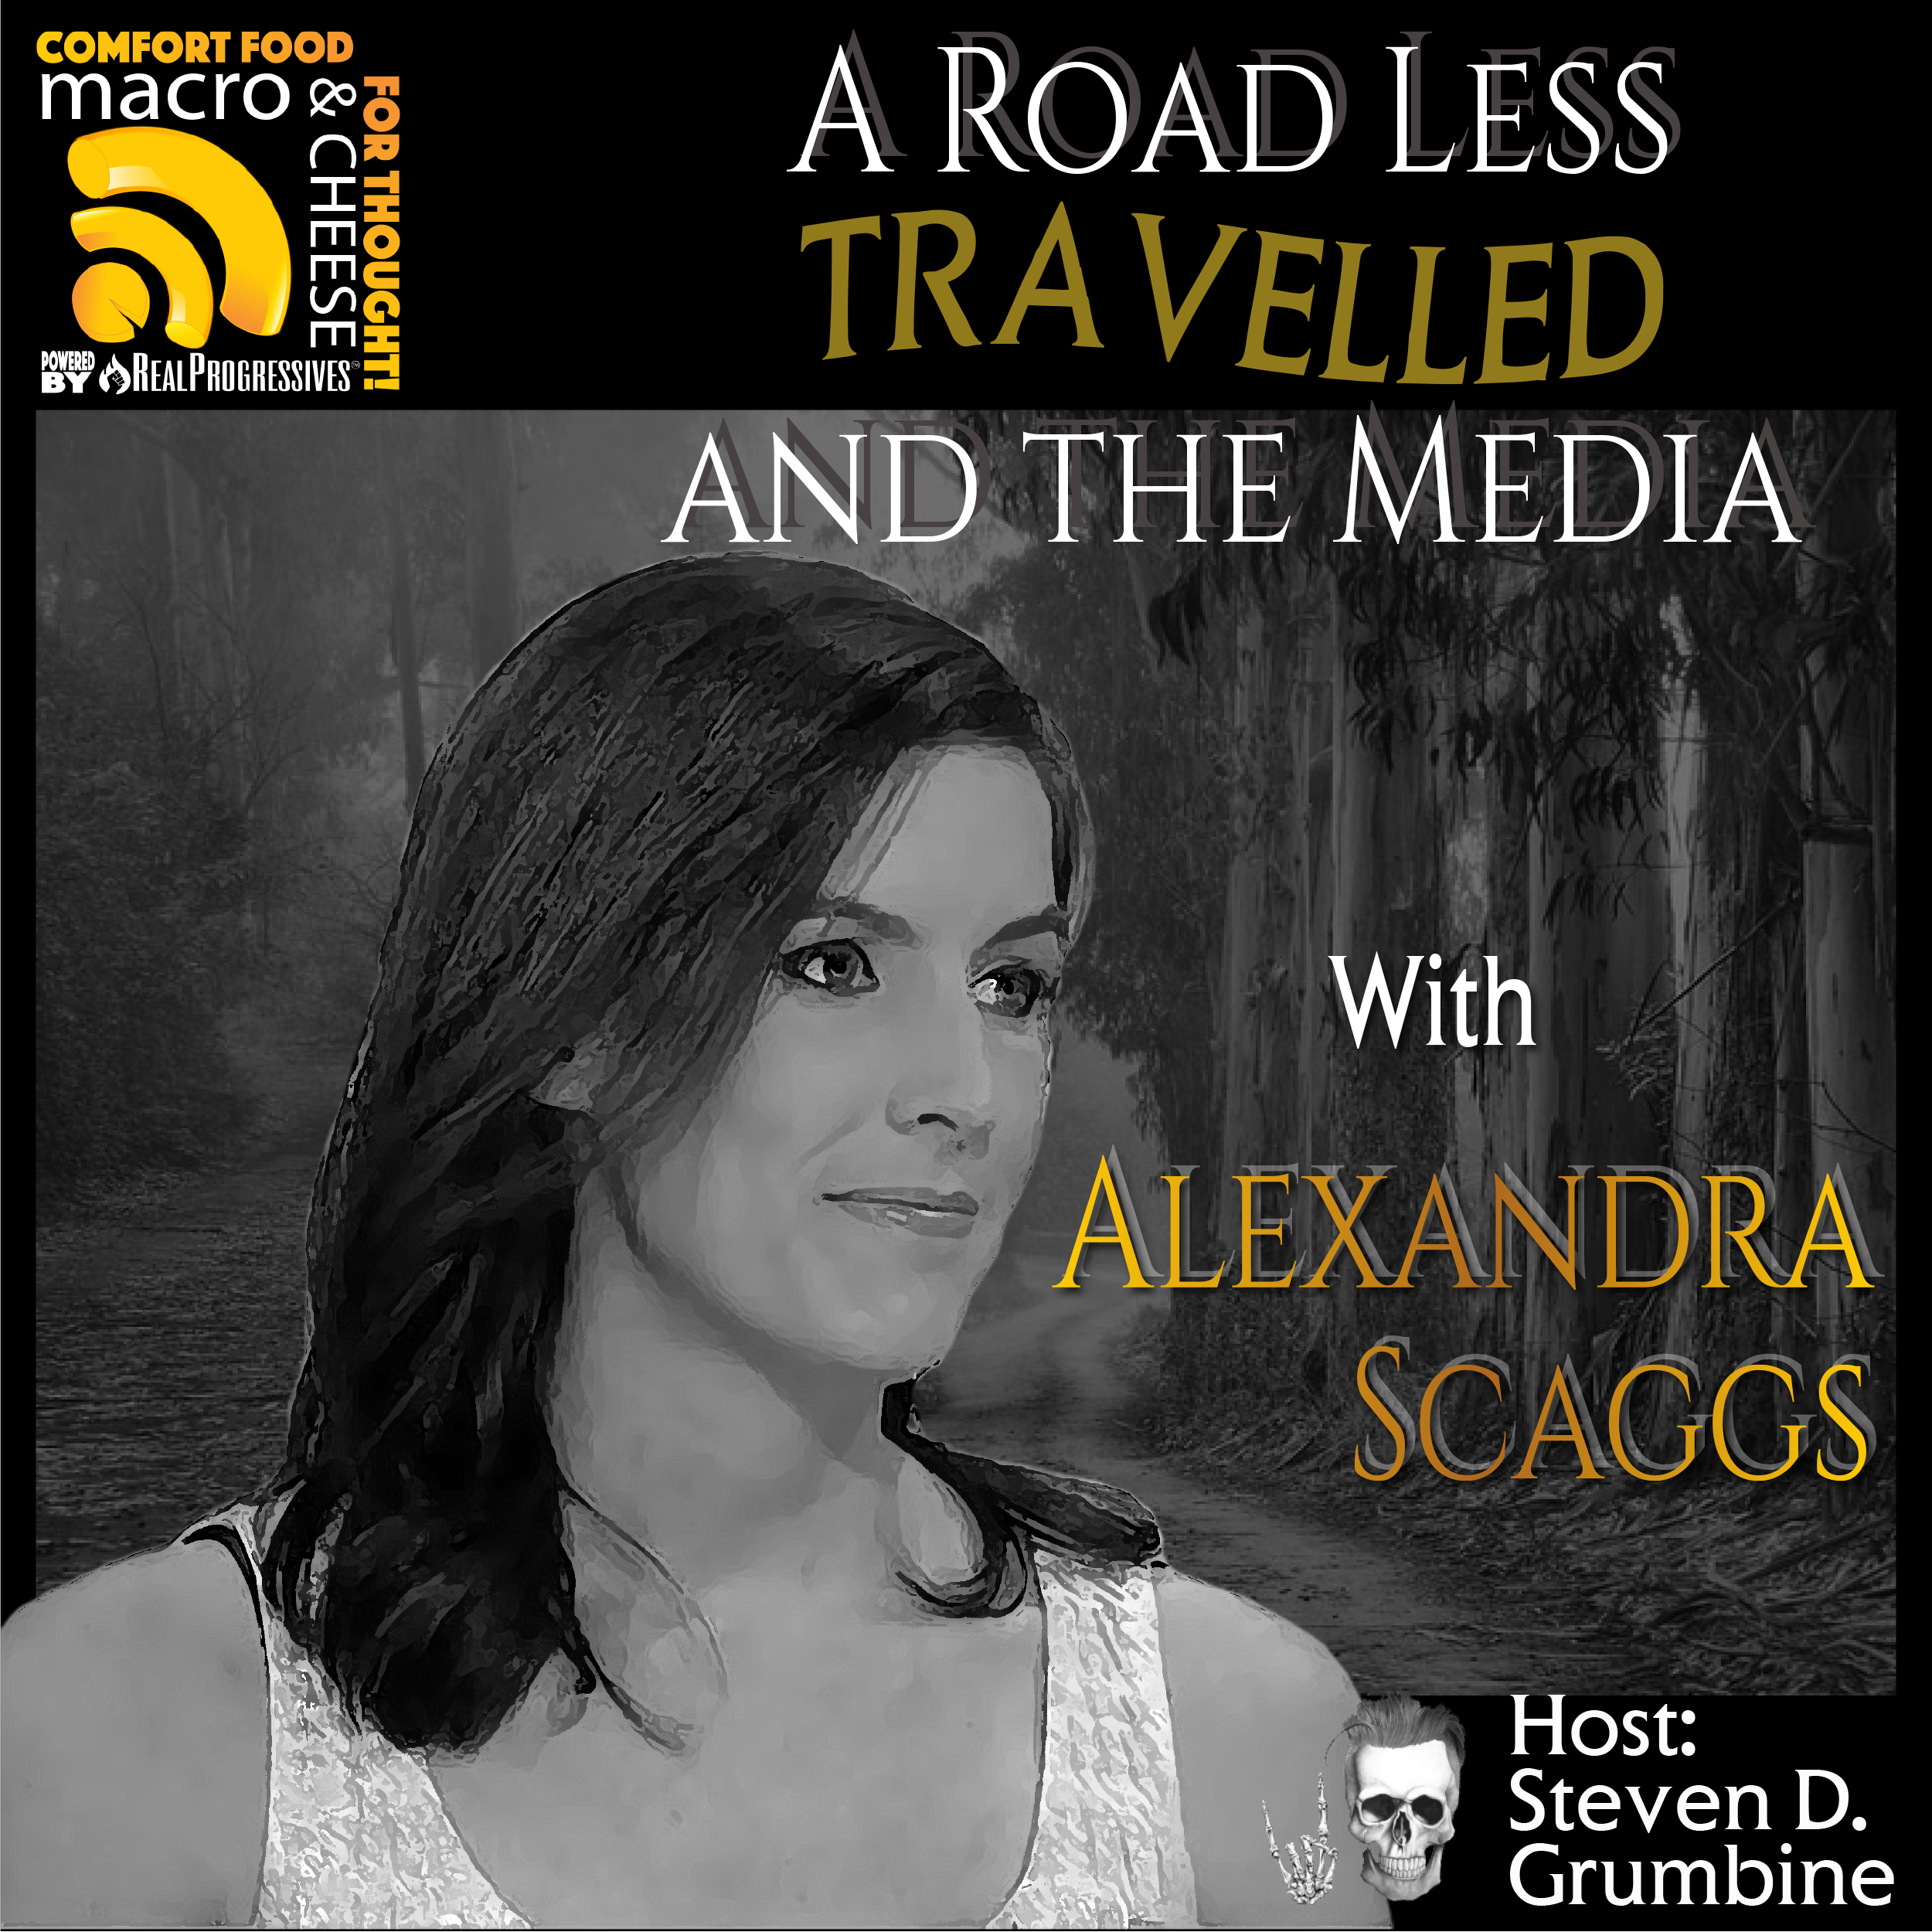 A Road Less Travelled and the Media with Alexandra Scaggs